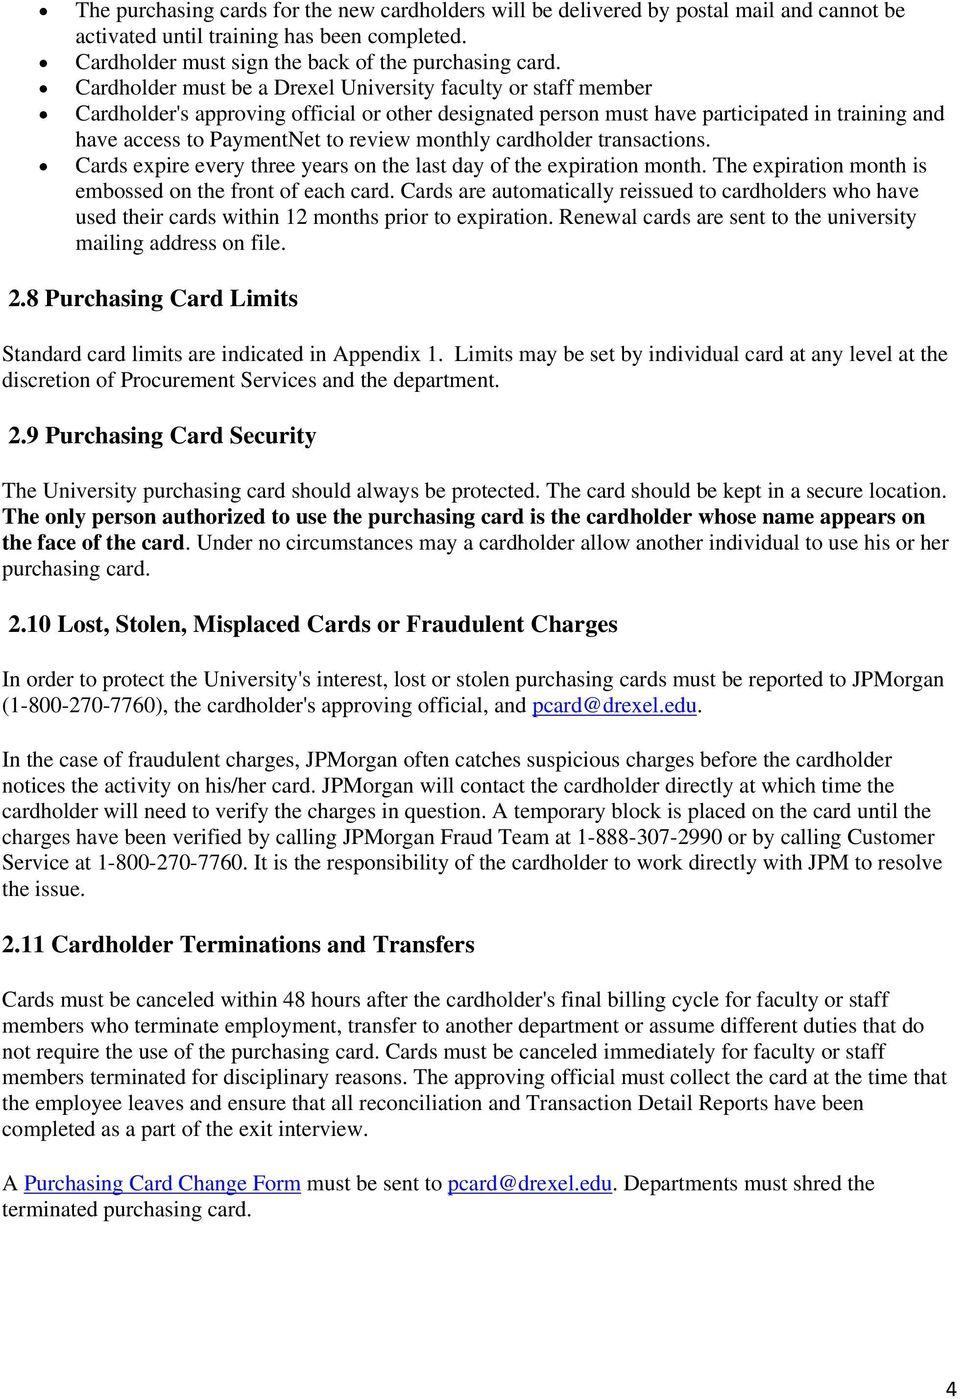 monthly cardholder transactions. Cards expire every three years on the last day of the expiration month. The expiration month is embossed on the front of each card.